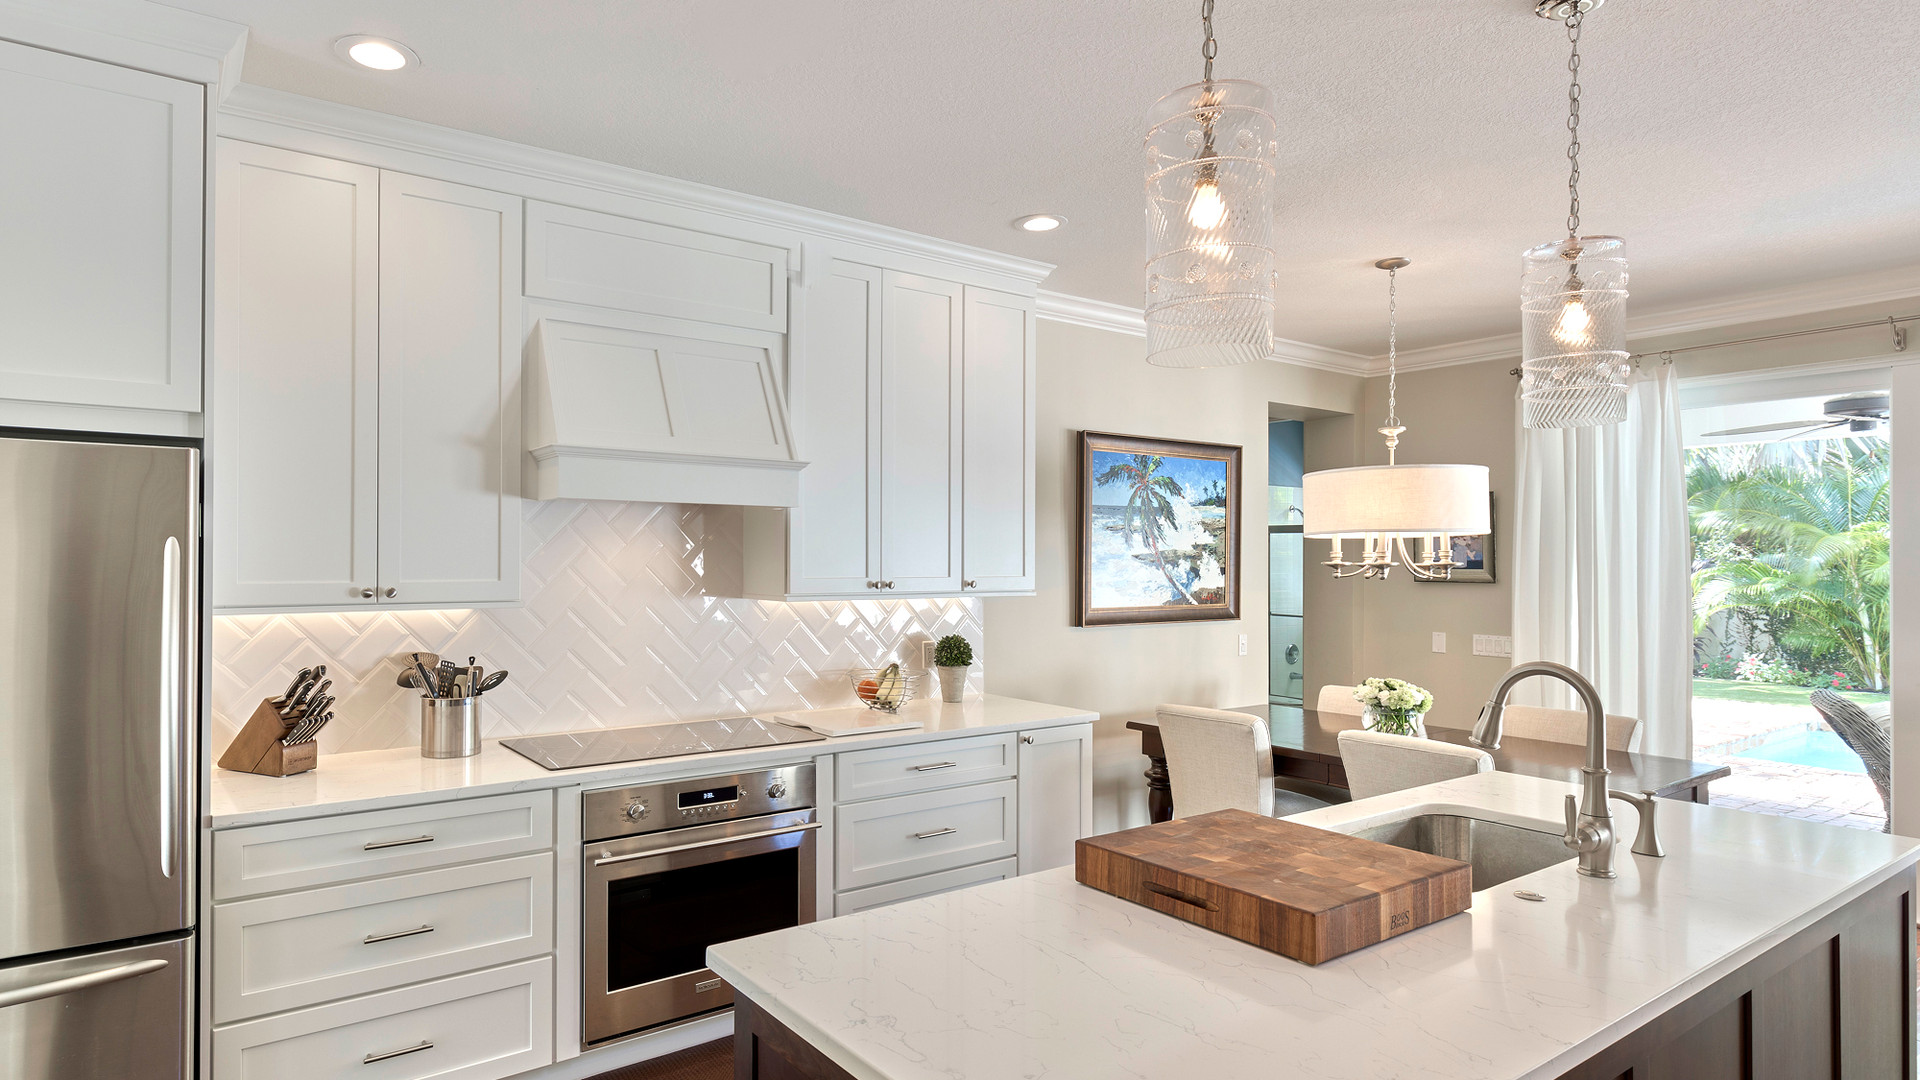 136 Sweet Bay Cr kitchen 4.jpg